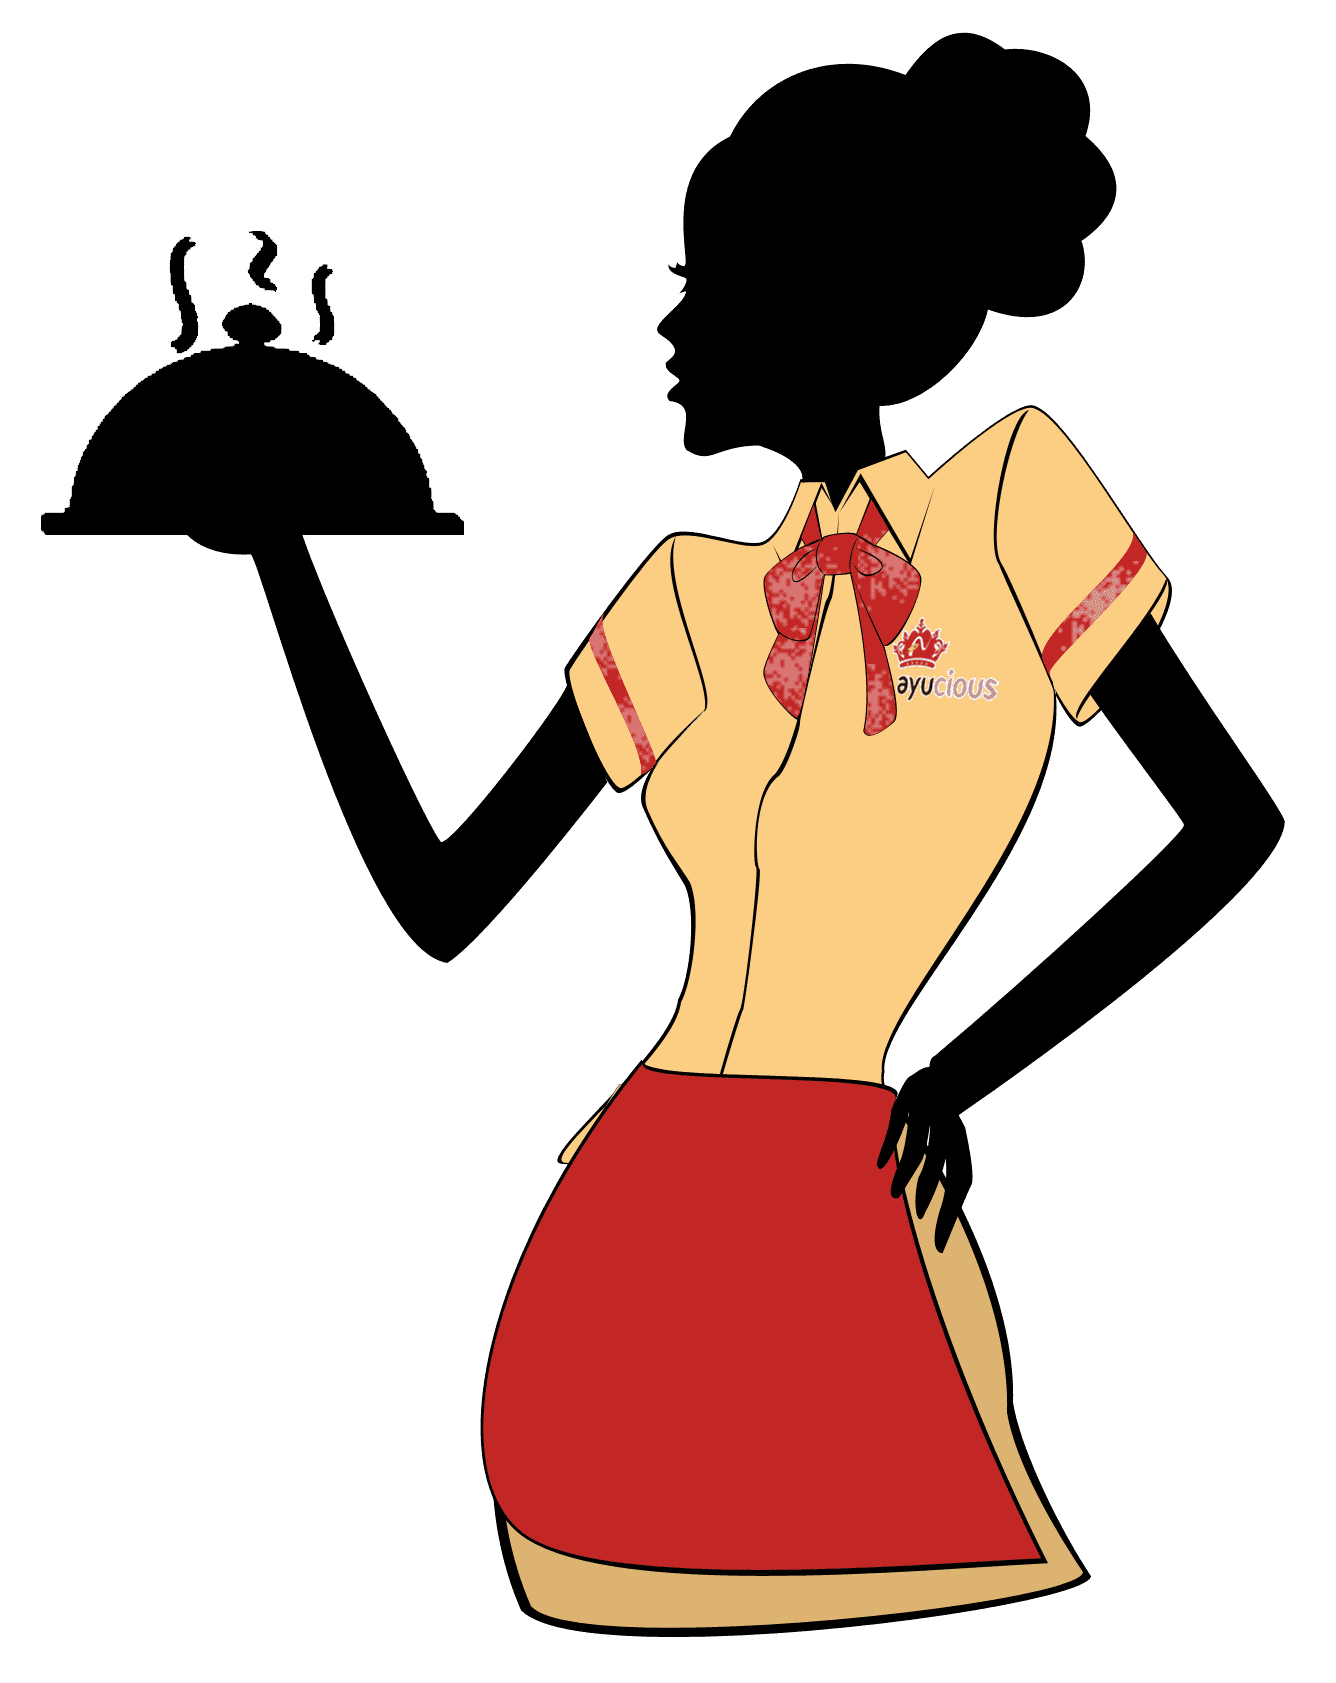 Waitress clipart food service. Png free images toppng